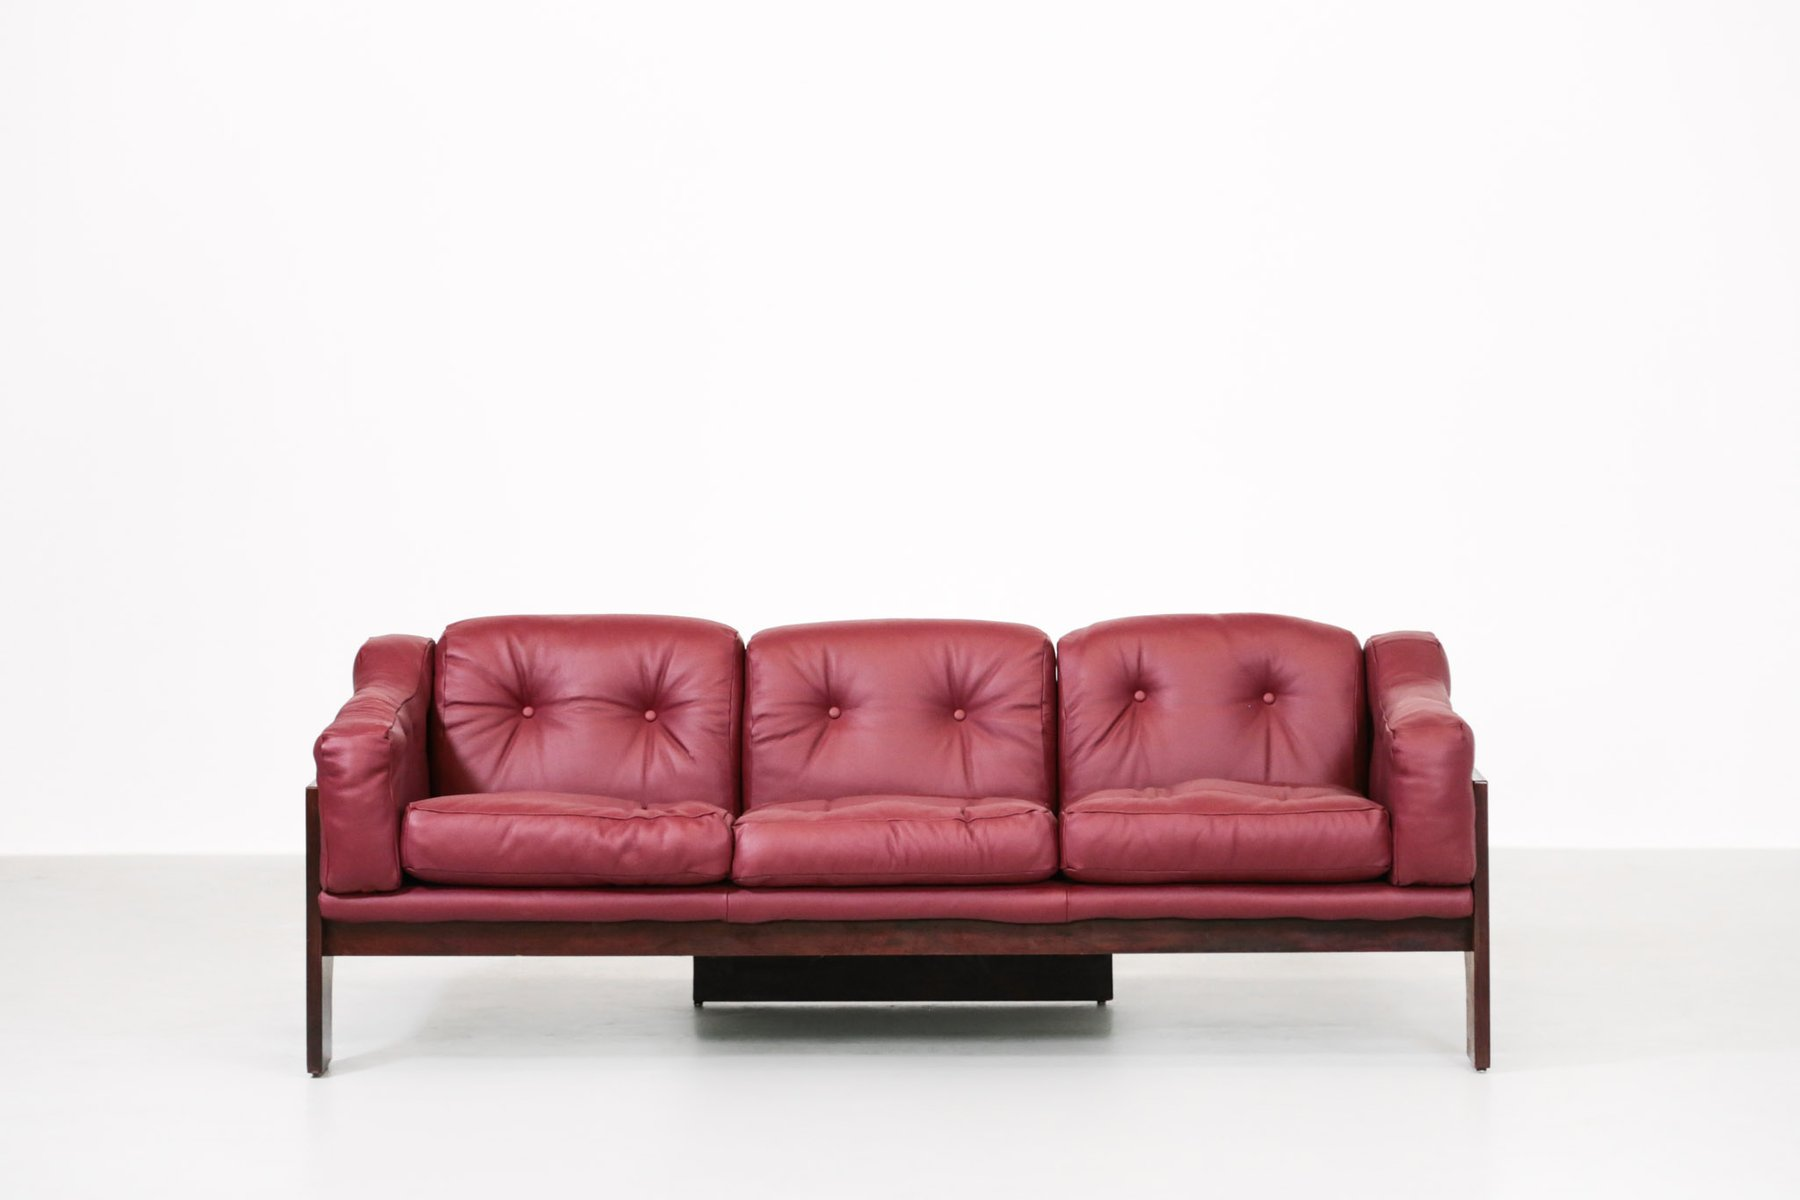 Sofa Dreams France Italian Oriolo Sofa By Claudio Salocchi For Sormani 1966